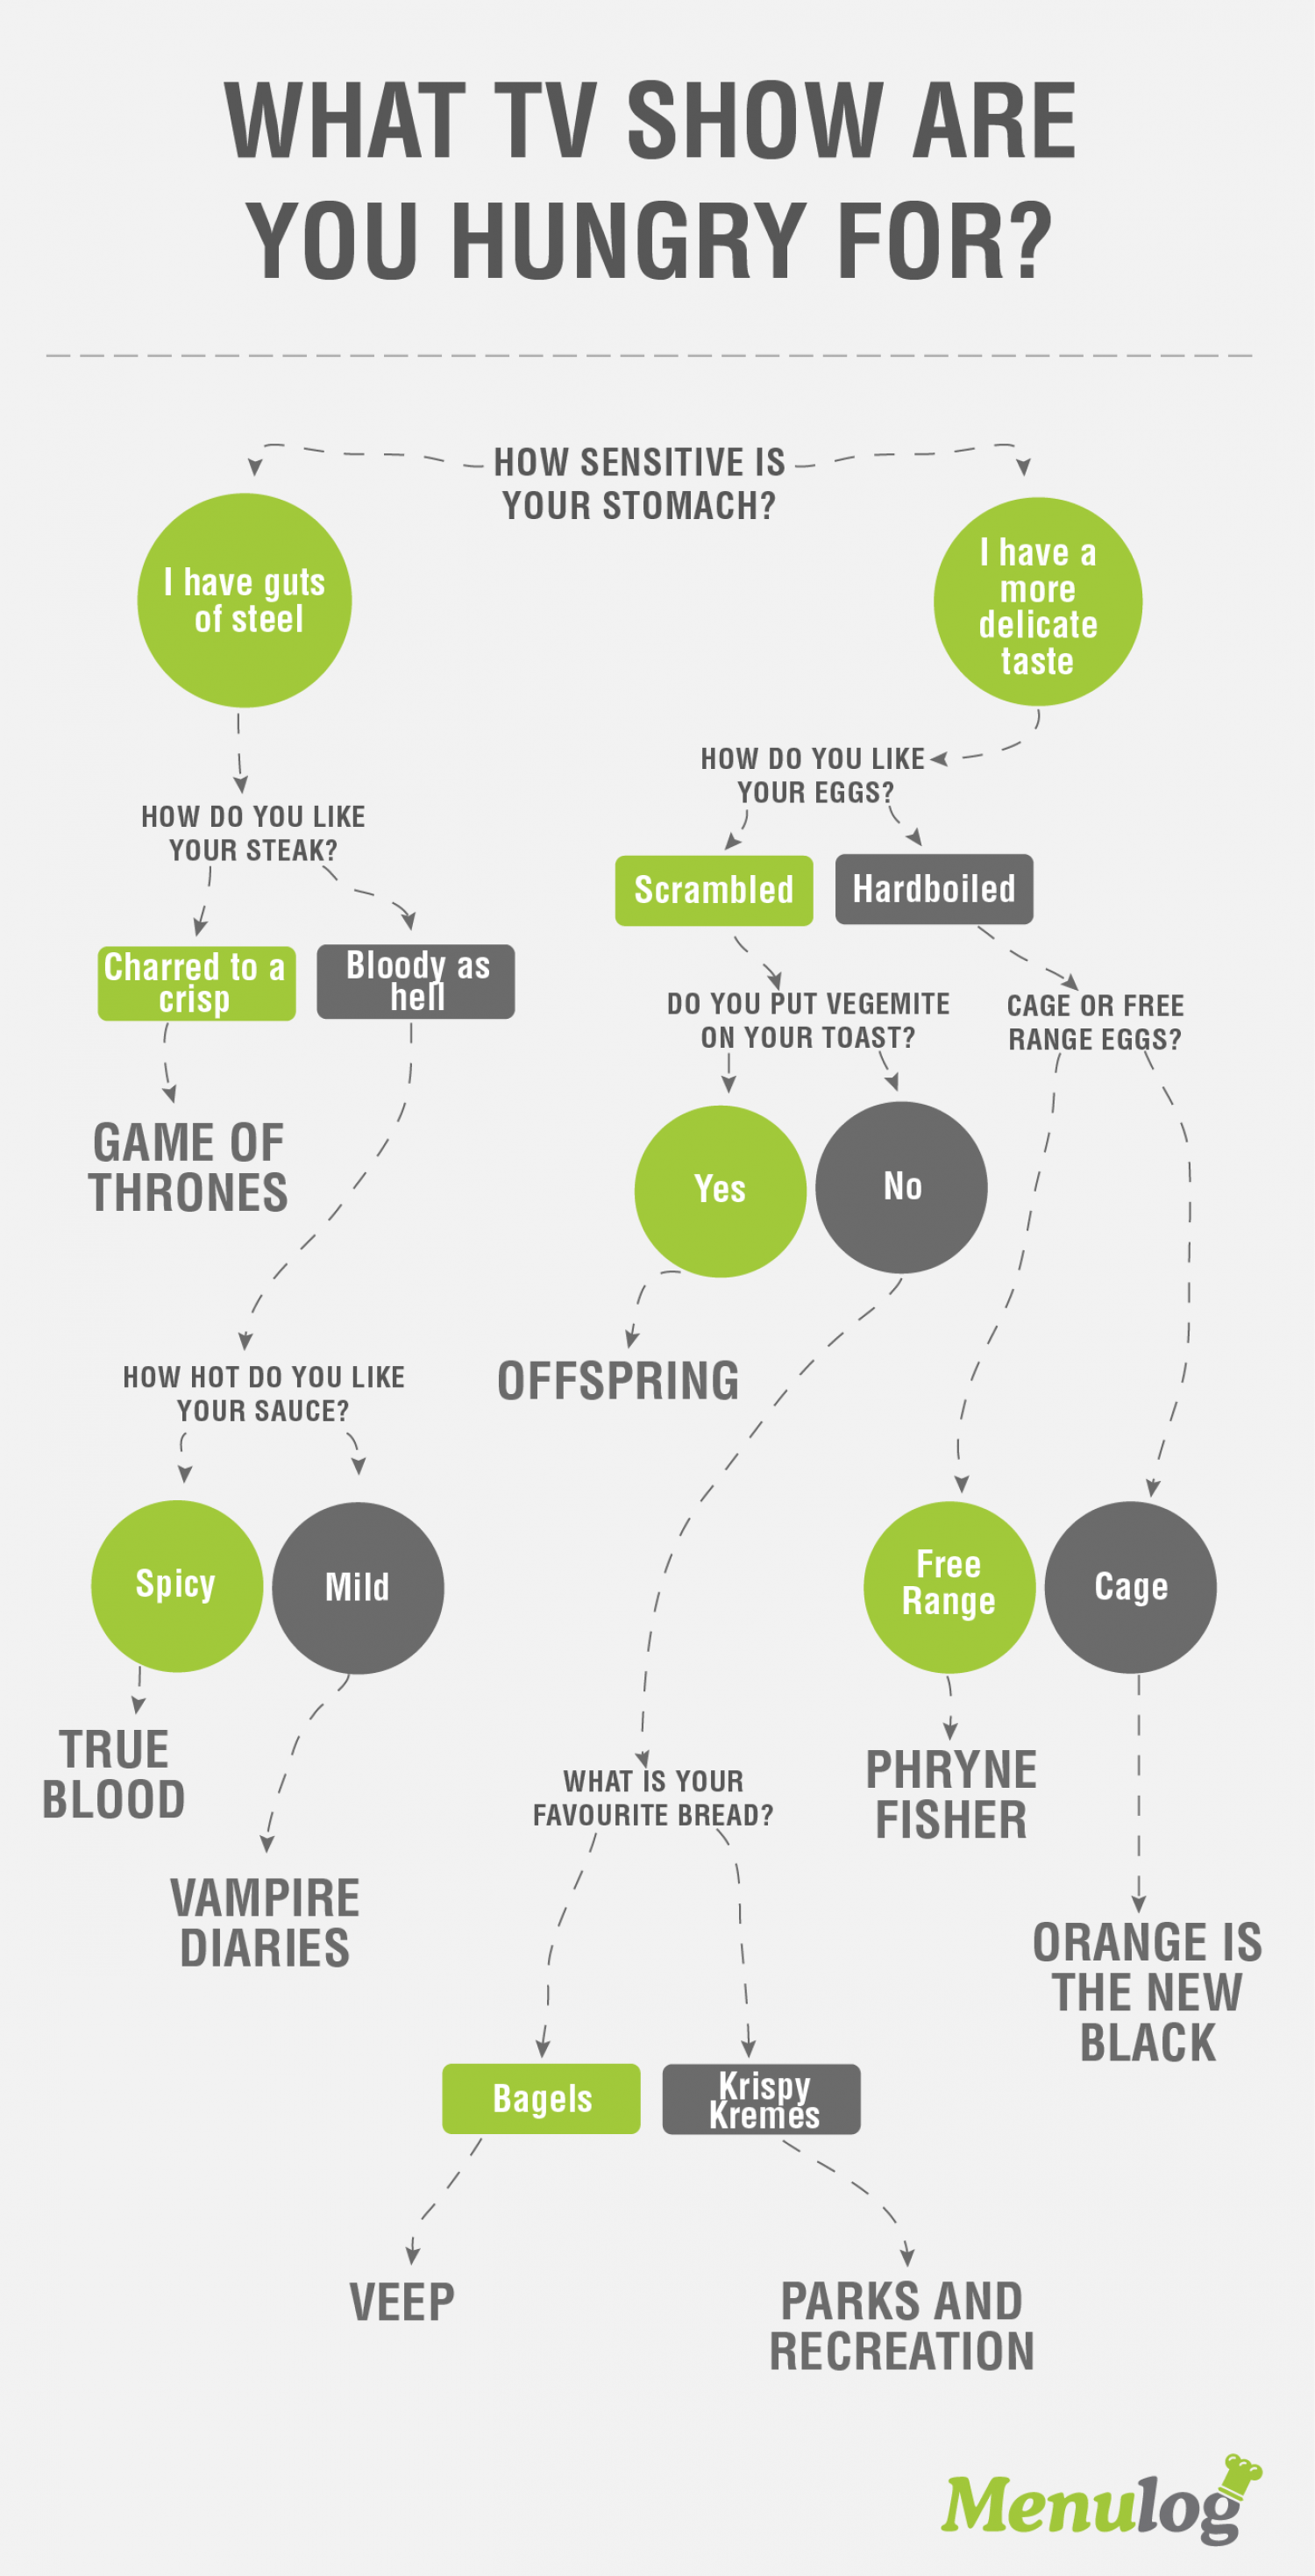 What TV Show Are You Hungry For? Infographic